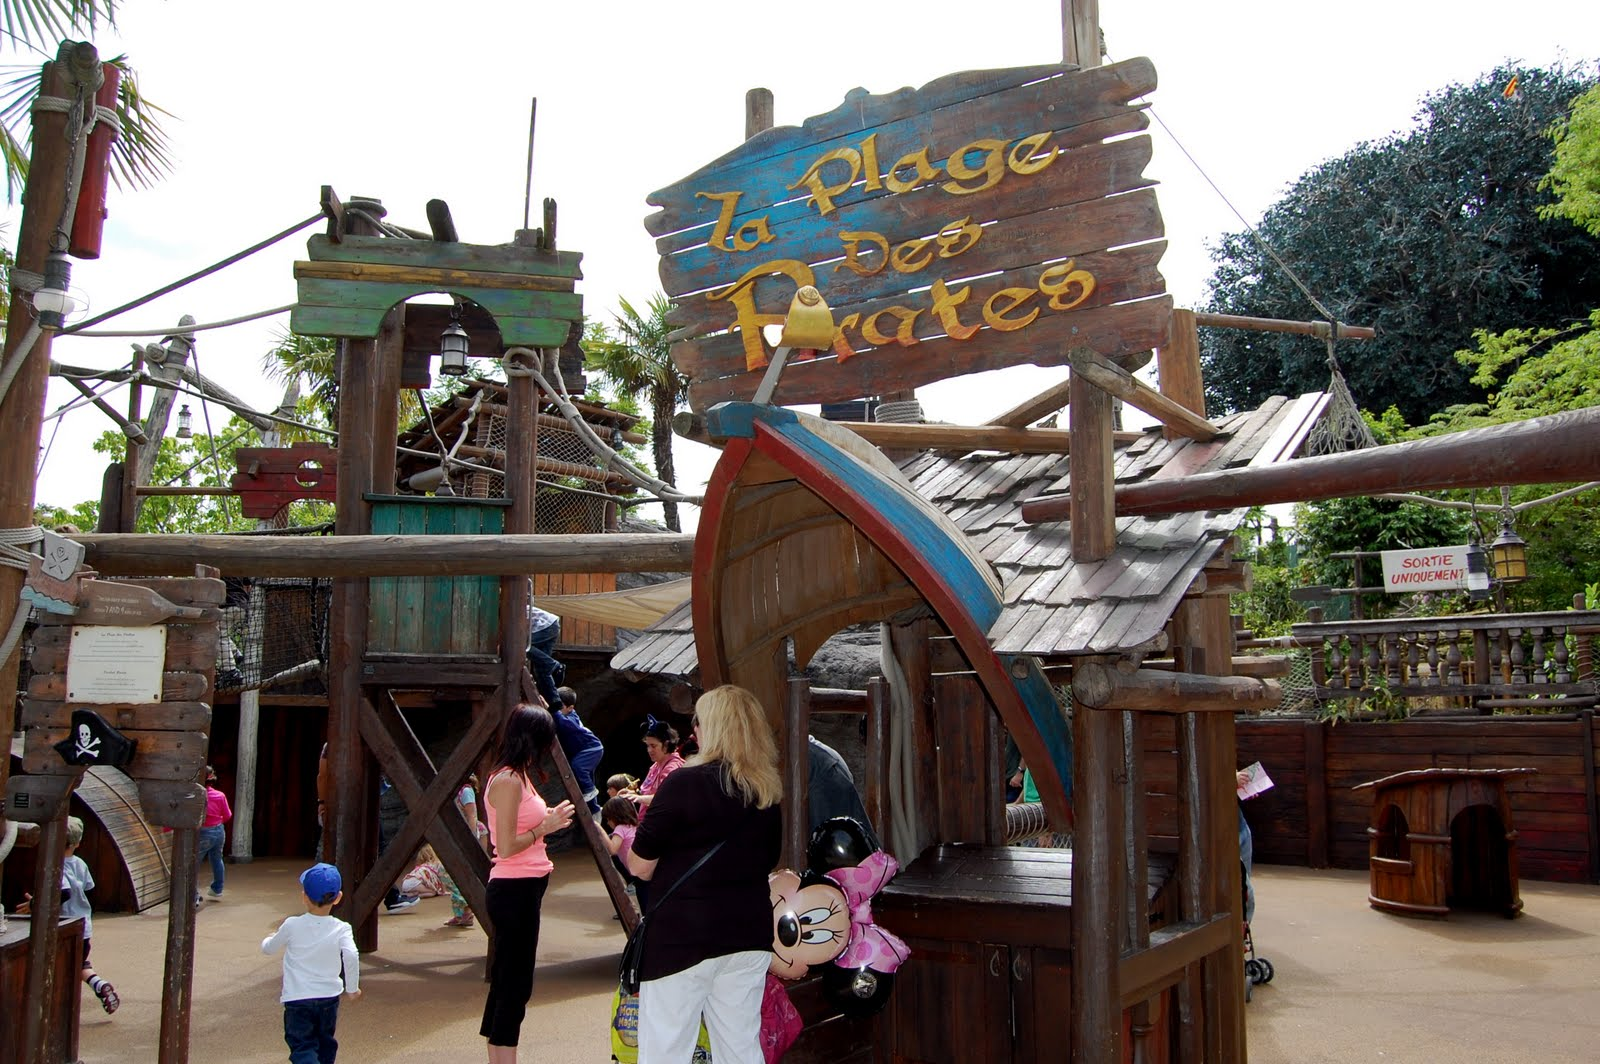 Pirates Beach Disneyland Paris Tips Advice Planning Hotel Restaurant Ride Reviews For All Attractions